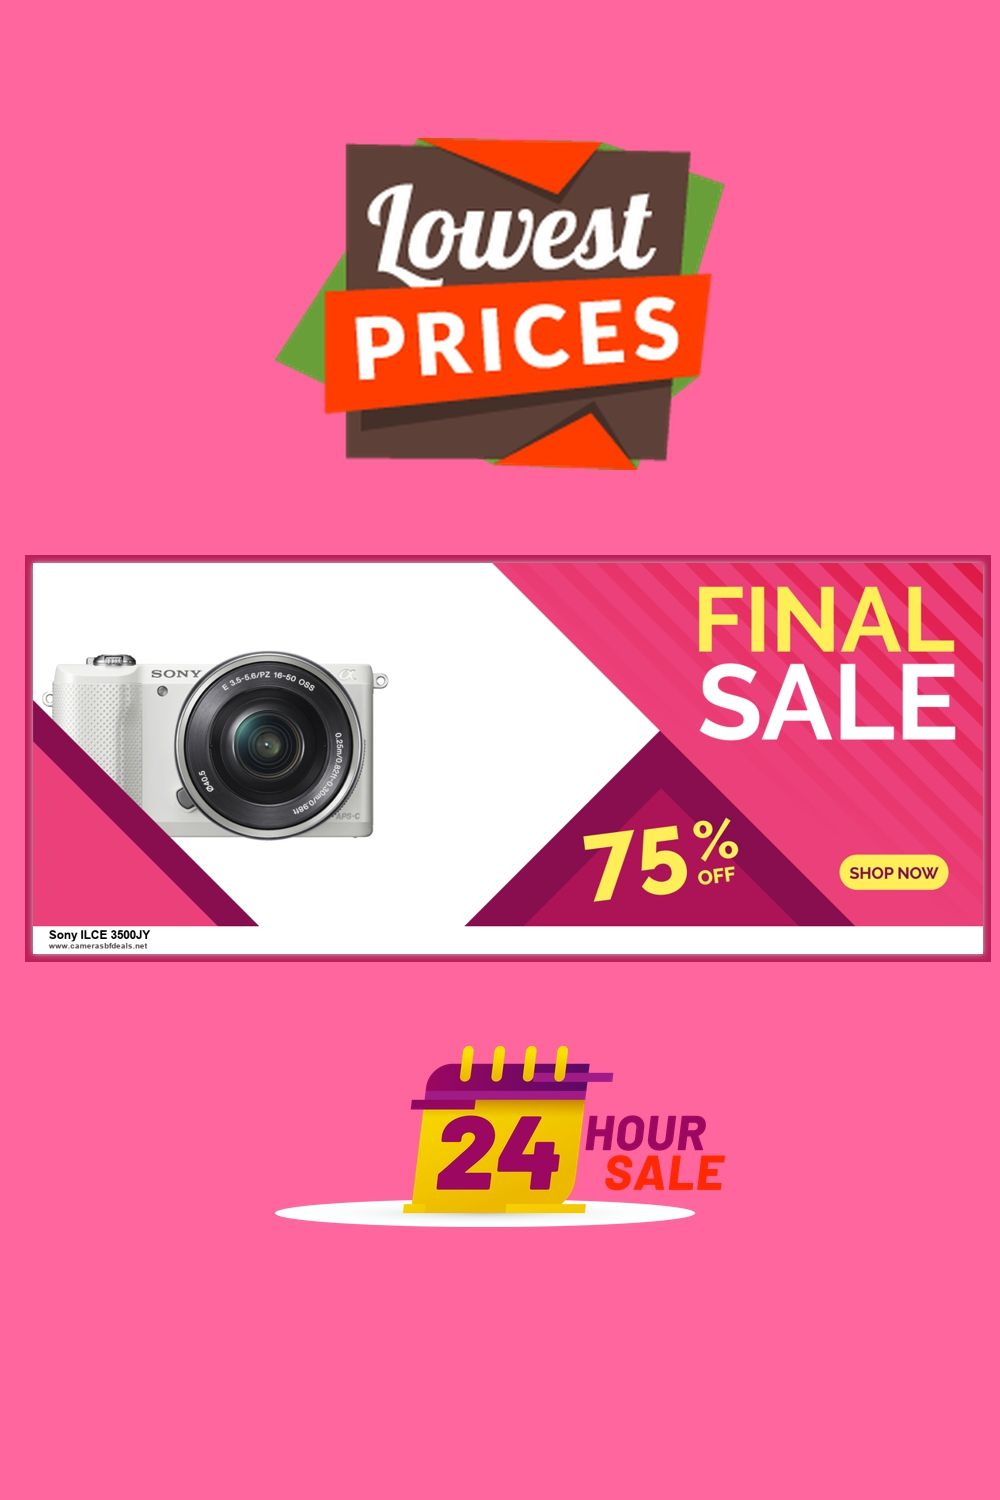 10 Best Black Friday Sony Ilce 3500jy Deals Sales 2020 In 2020 Black Friday Best Black Friday Black Friday Cyber Monday